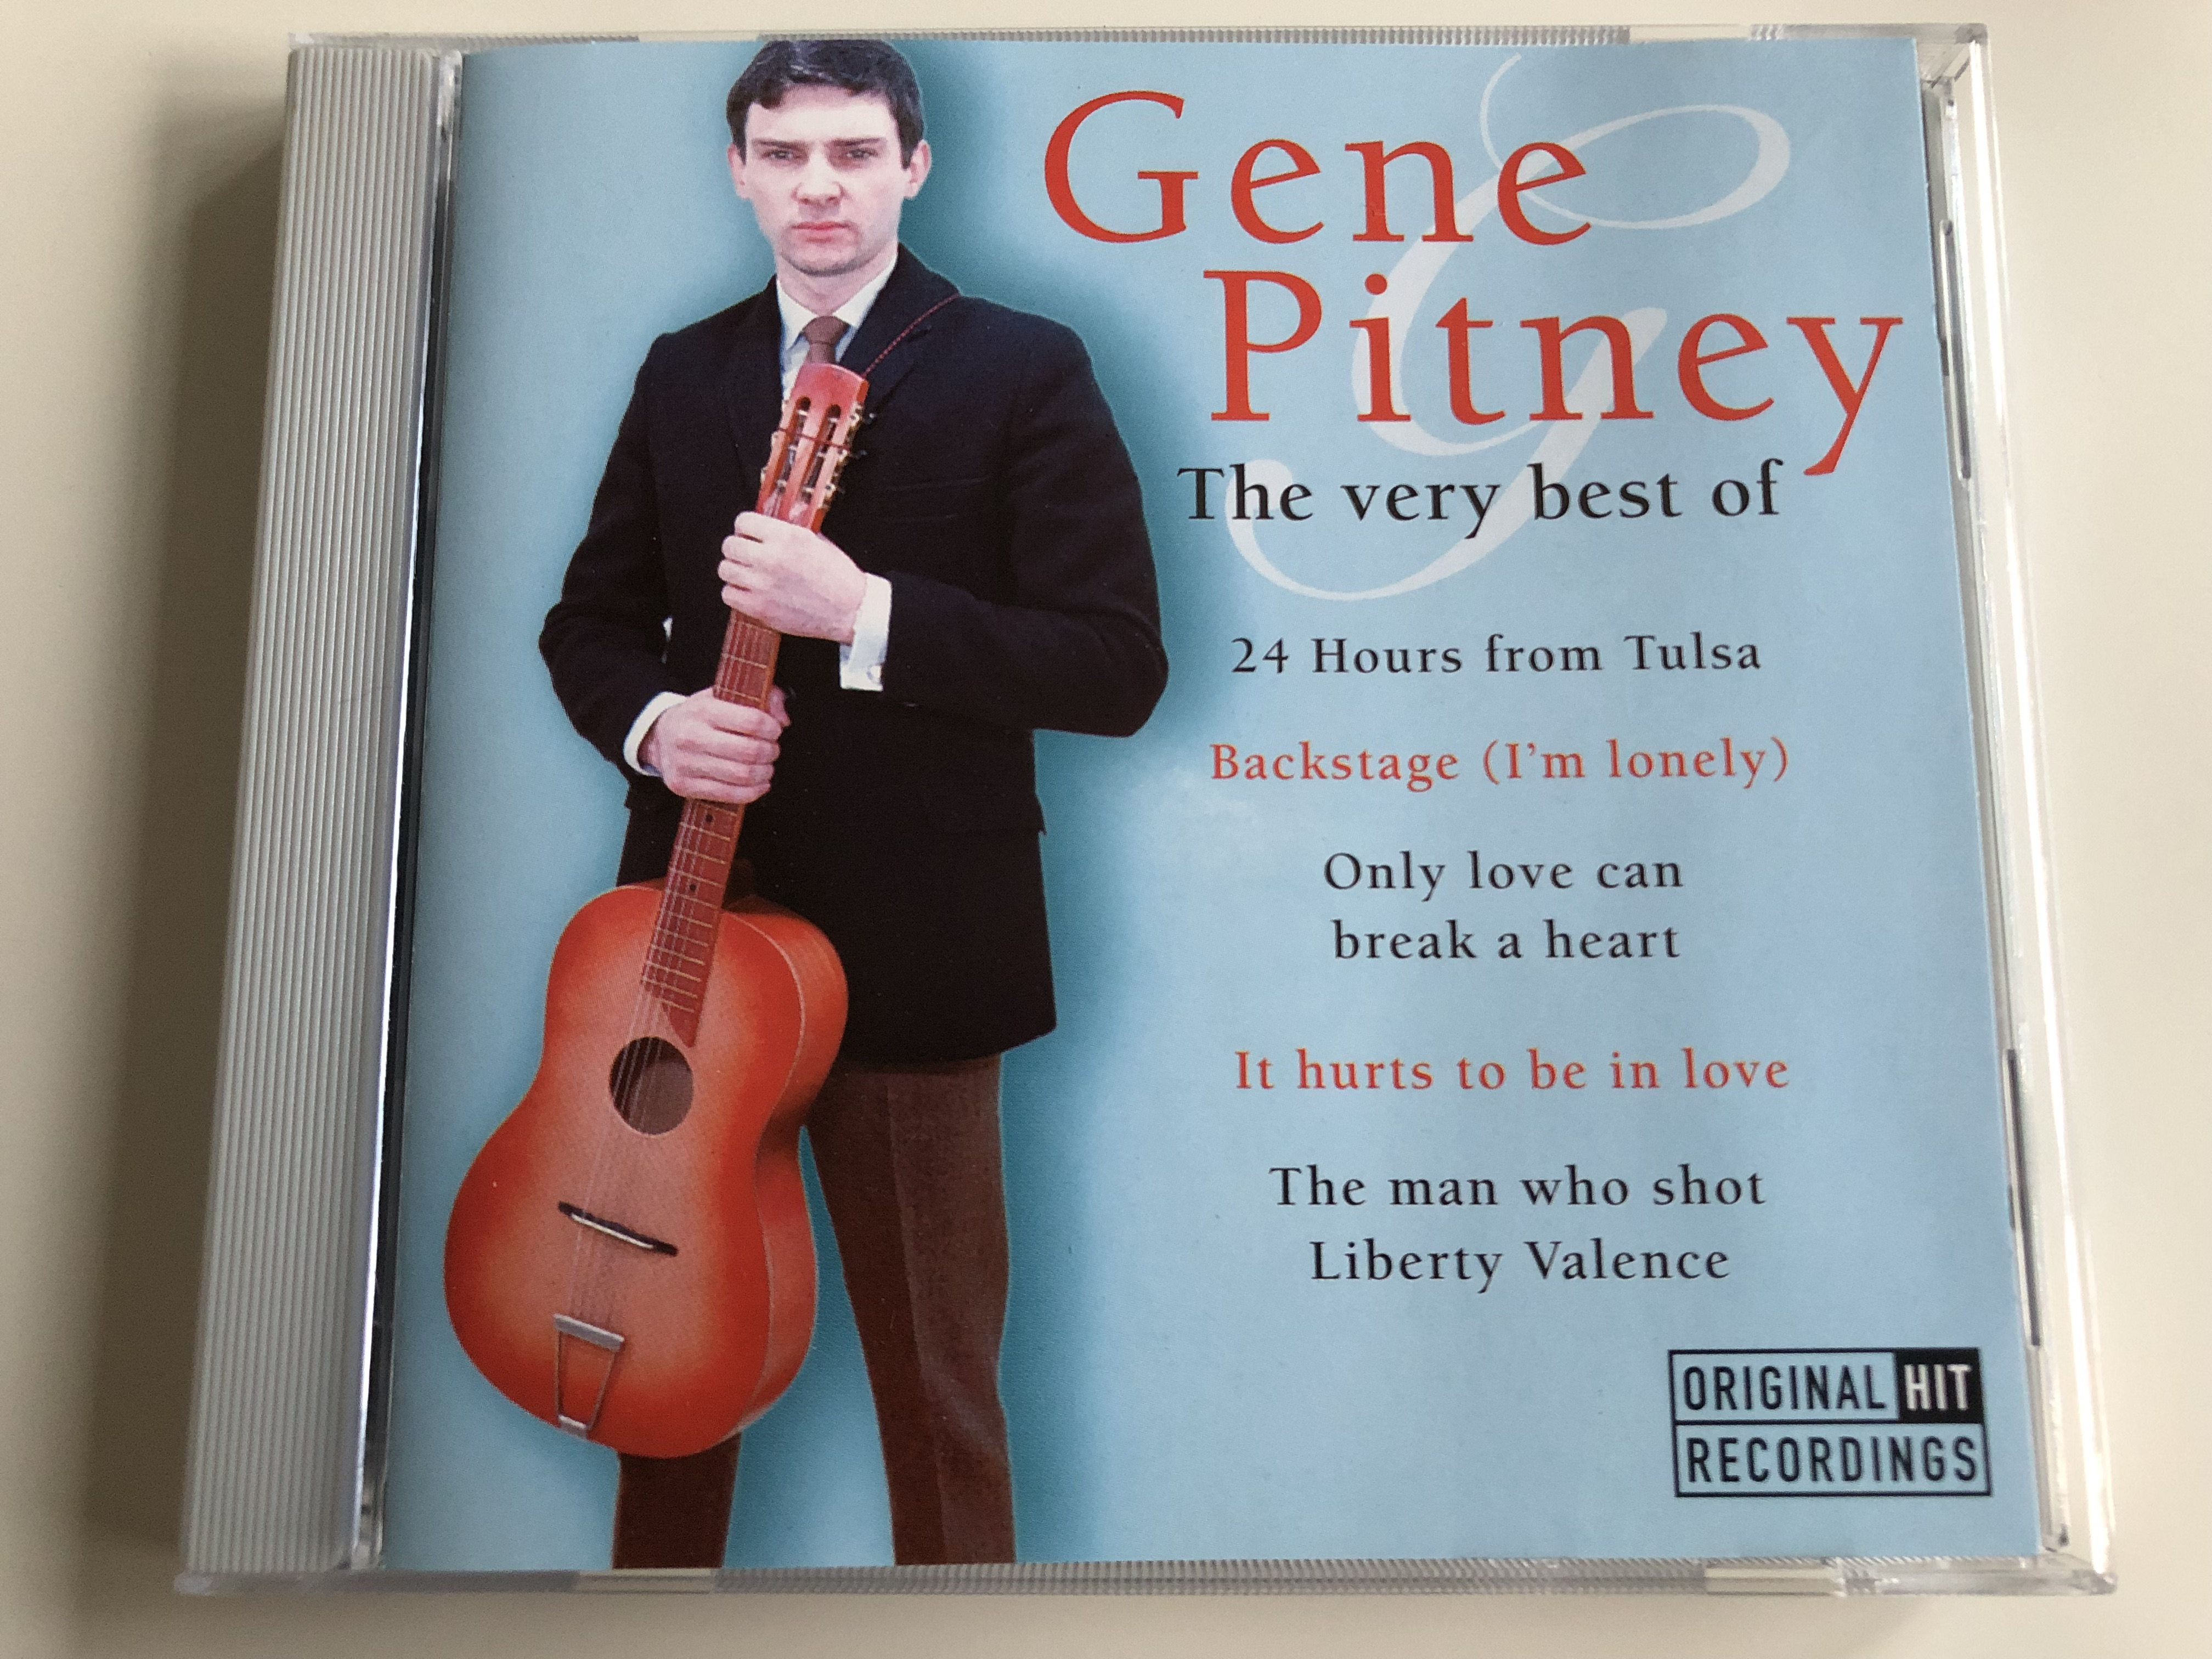 gene-pitney-the-very-best-of-24-hours-from-tulsa-backstage-i-m-lonely-only-love-can-break-a-heart-it-hurts-to-be-in-love-tha-man-who-shot-liberty-valence-wise-buy-audio-cd-1998-wb-885532-1-.jpg